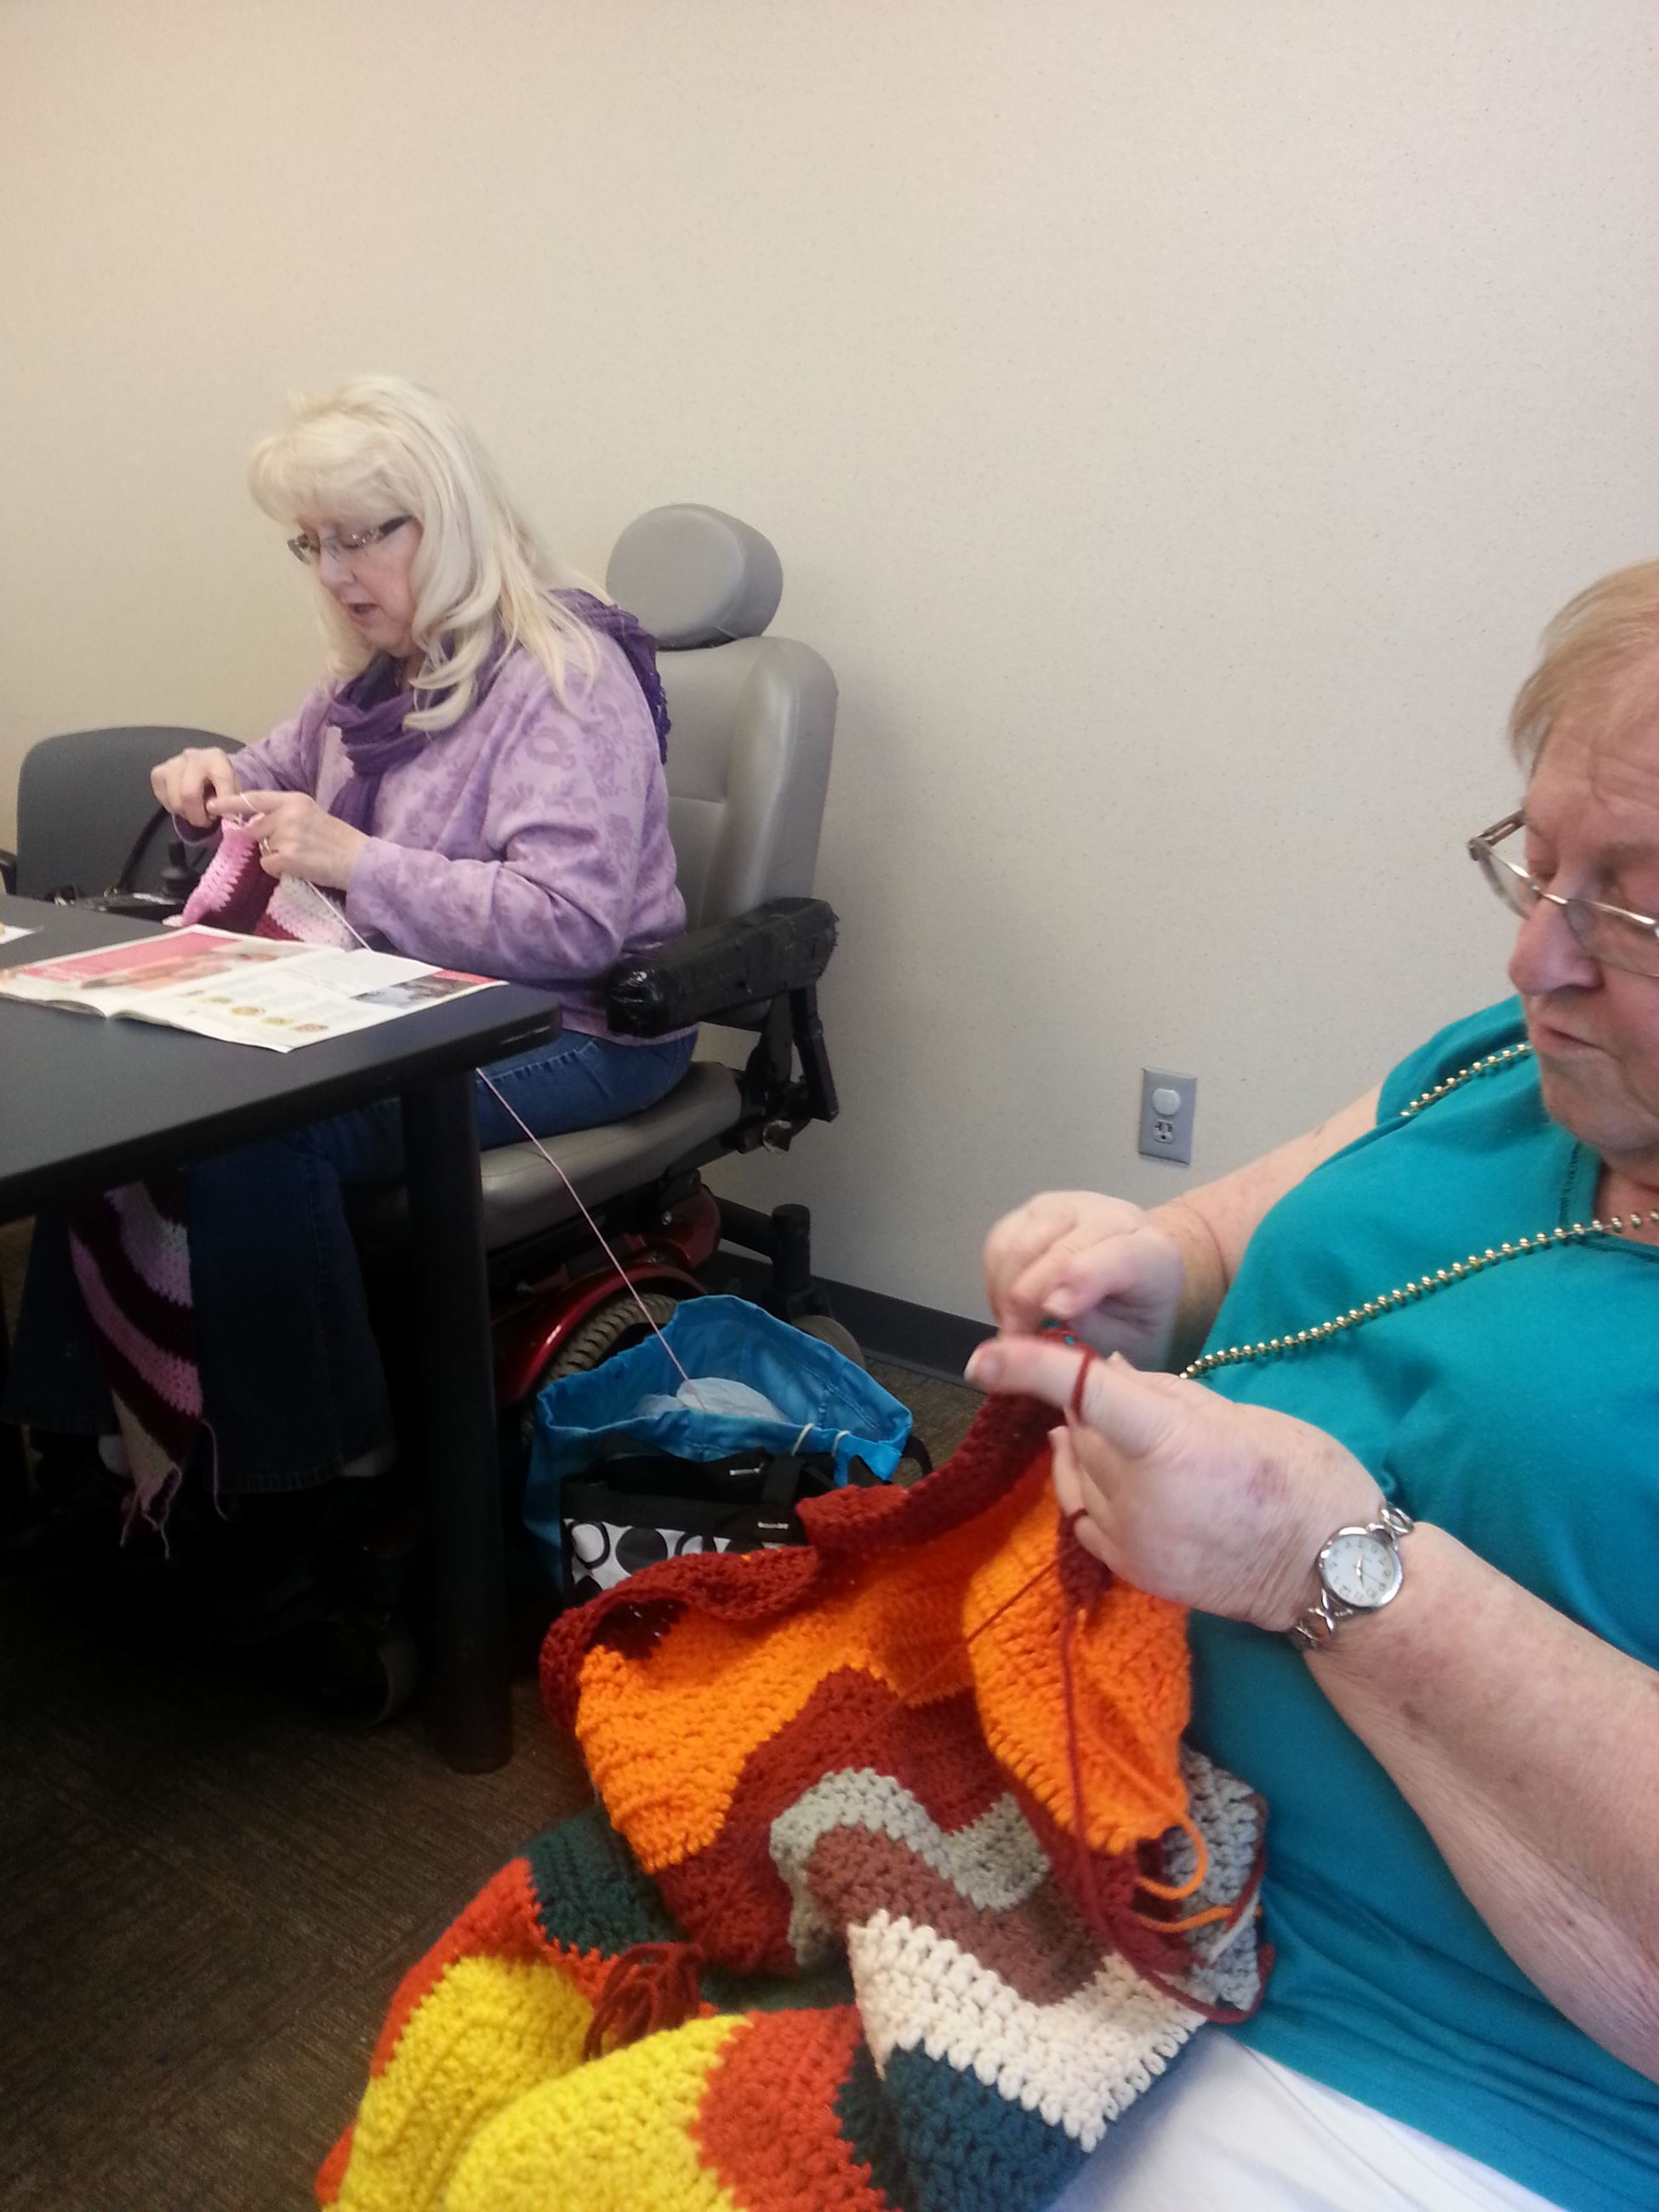 Crocheters making lap robes